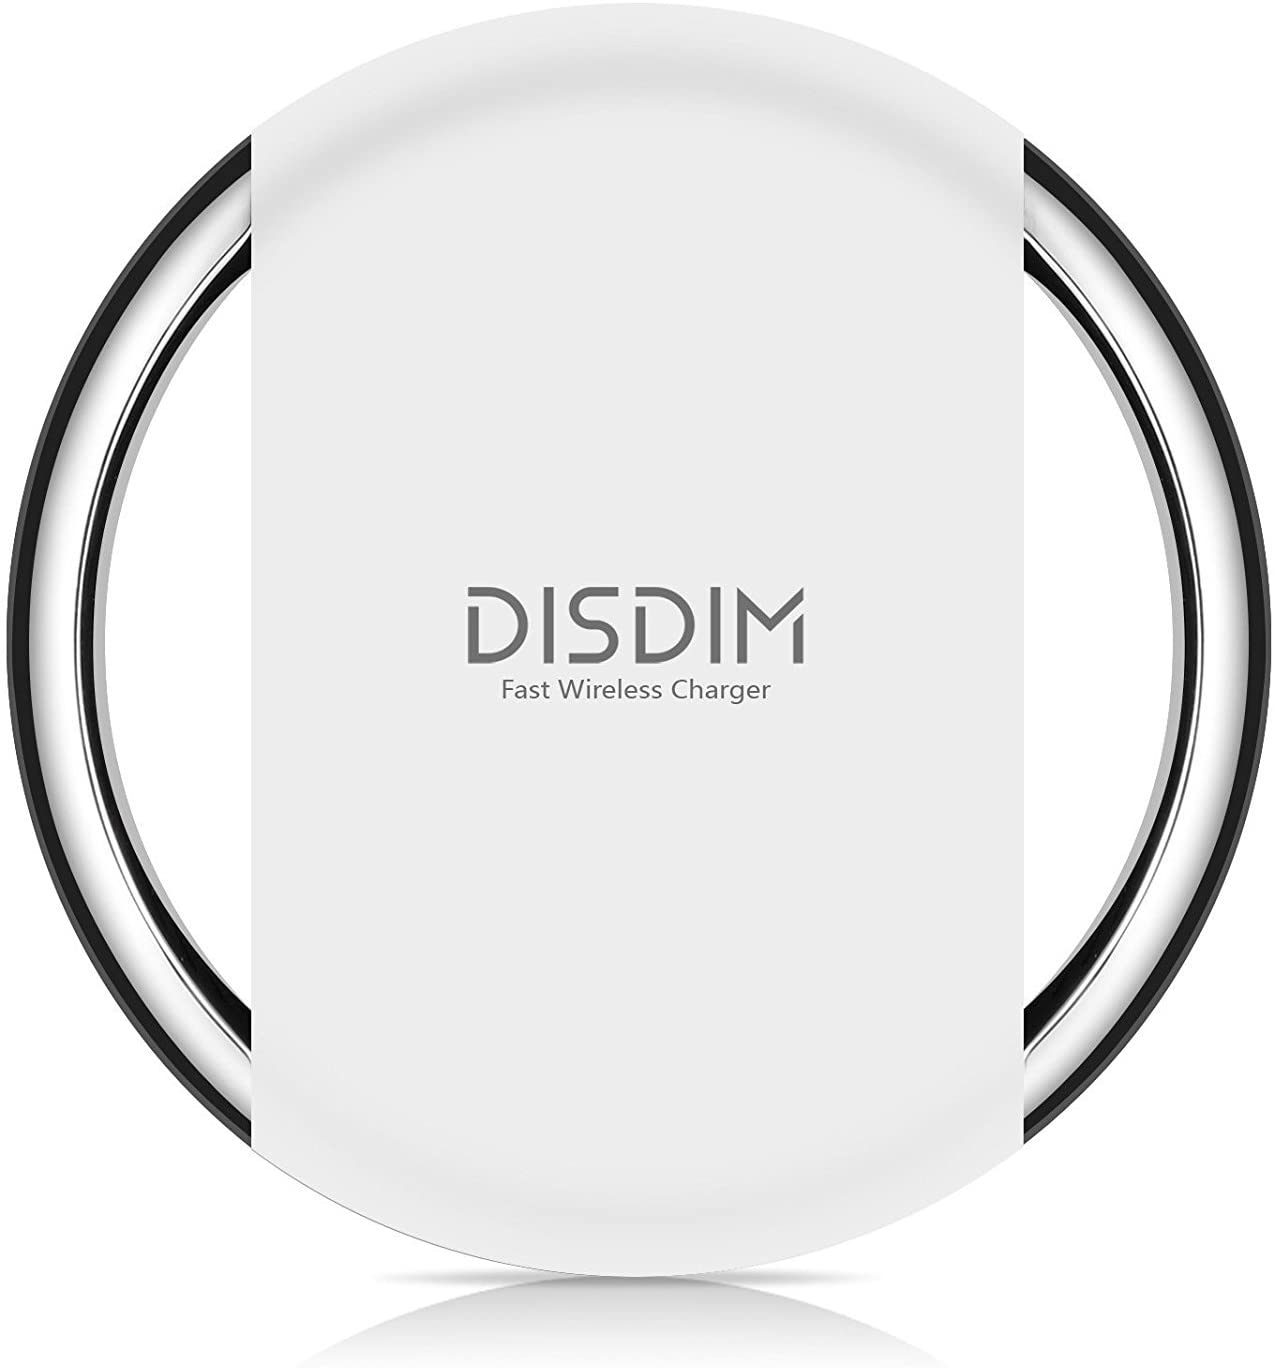 Fast Wireless Charger,DISDIM [Alloy Frame] Breathing Lamp Qi Fast Wireless Charger Charging Pad for Samsung Galaxy S8/ S8 Plus / S7 / and Qi-Enabled Devices (White)